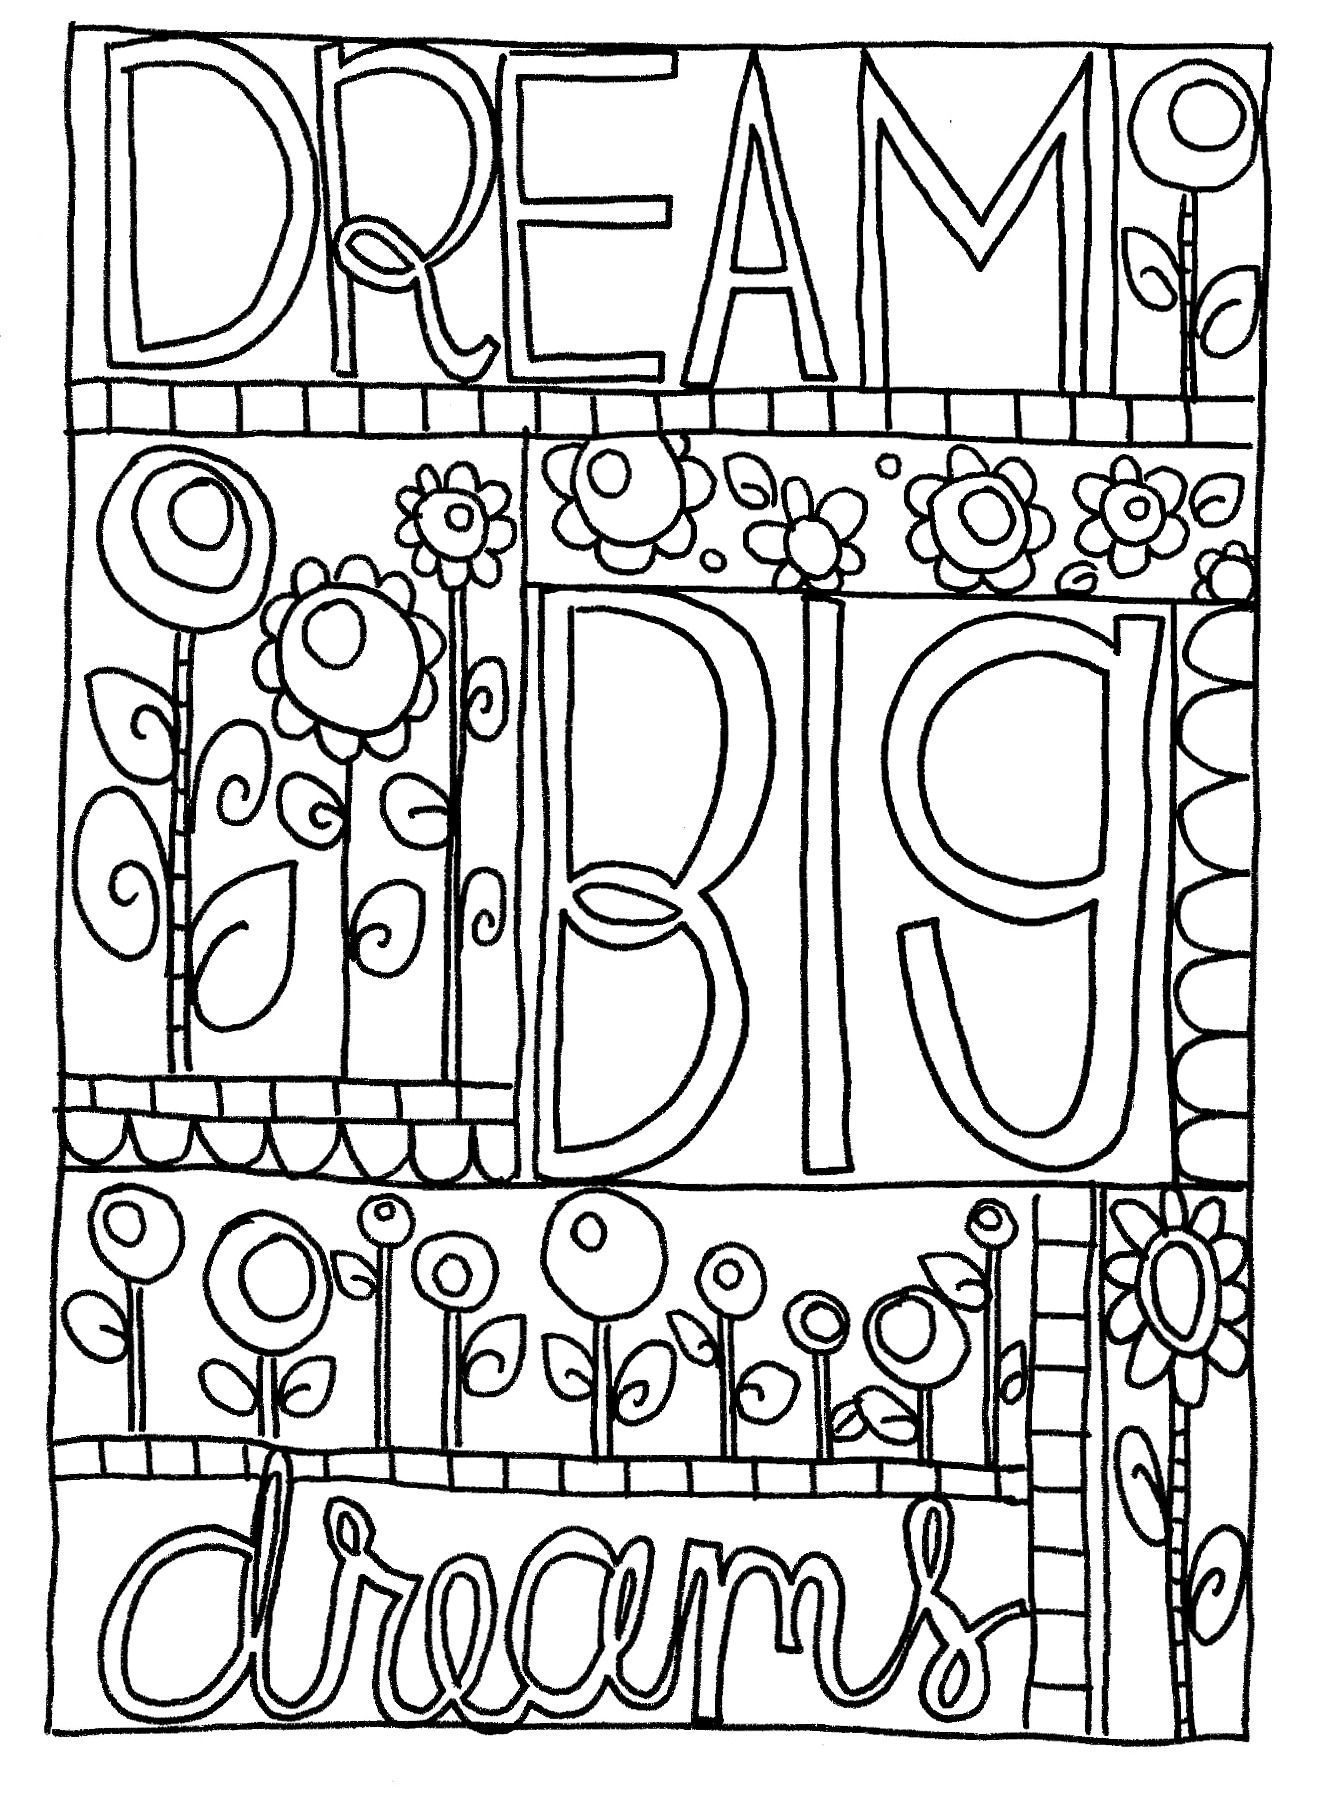 Pin by Brenda R on Thing for kids Pinterest Coloring pages